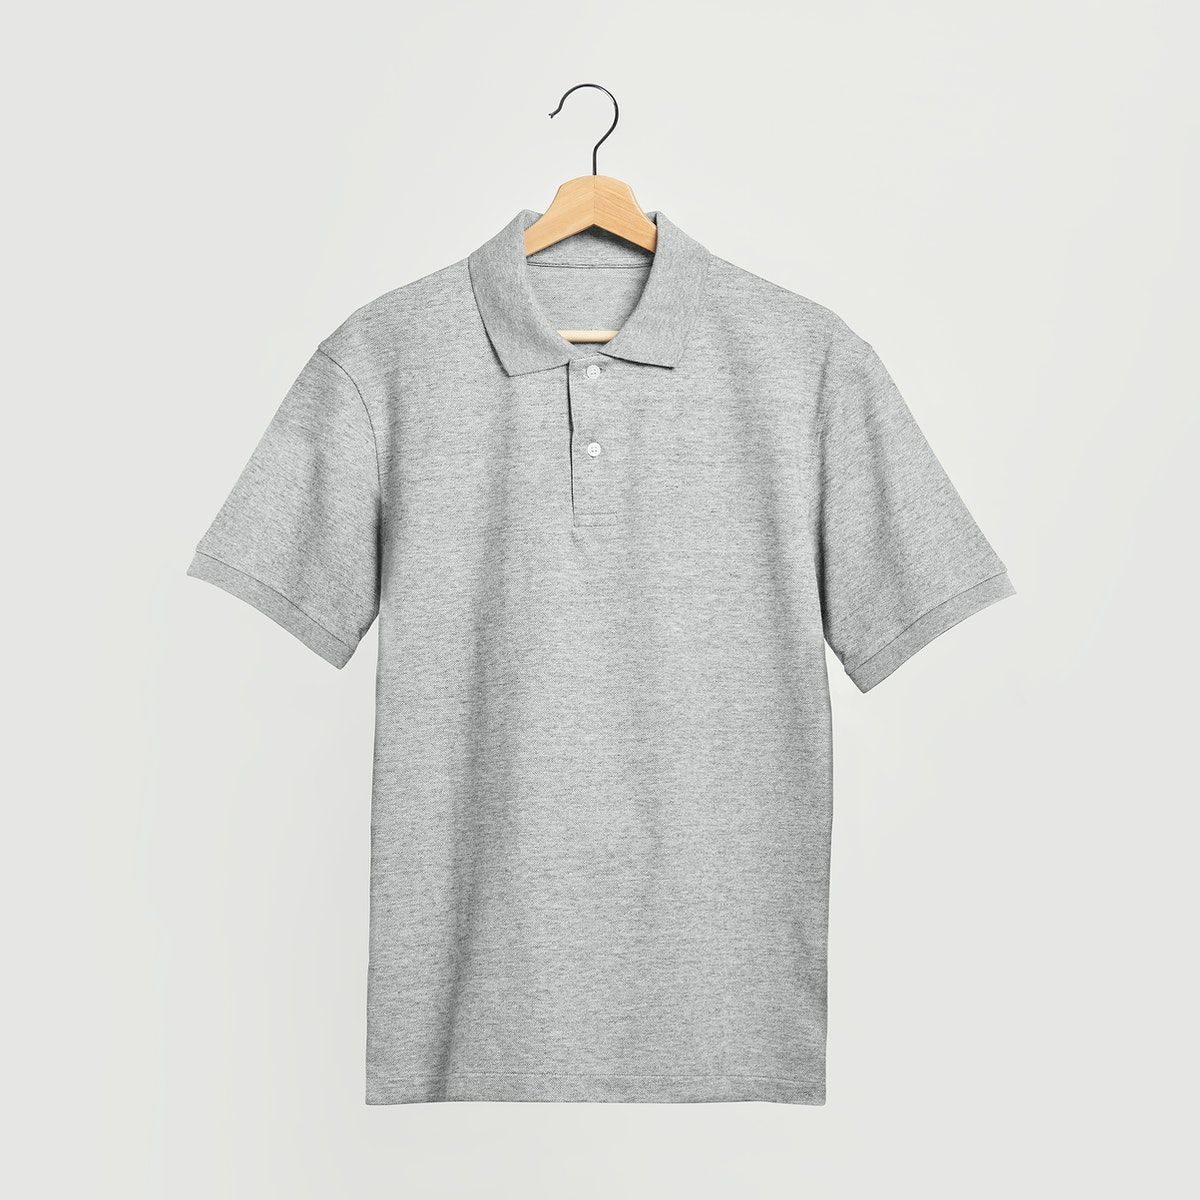 Download Men S Gray Polo Shirt Mockup On A Wooden Hanger Premium Image By Rawpixel Com Chanikarn Thongsupa